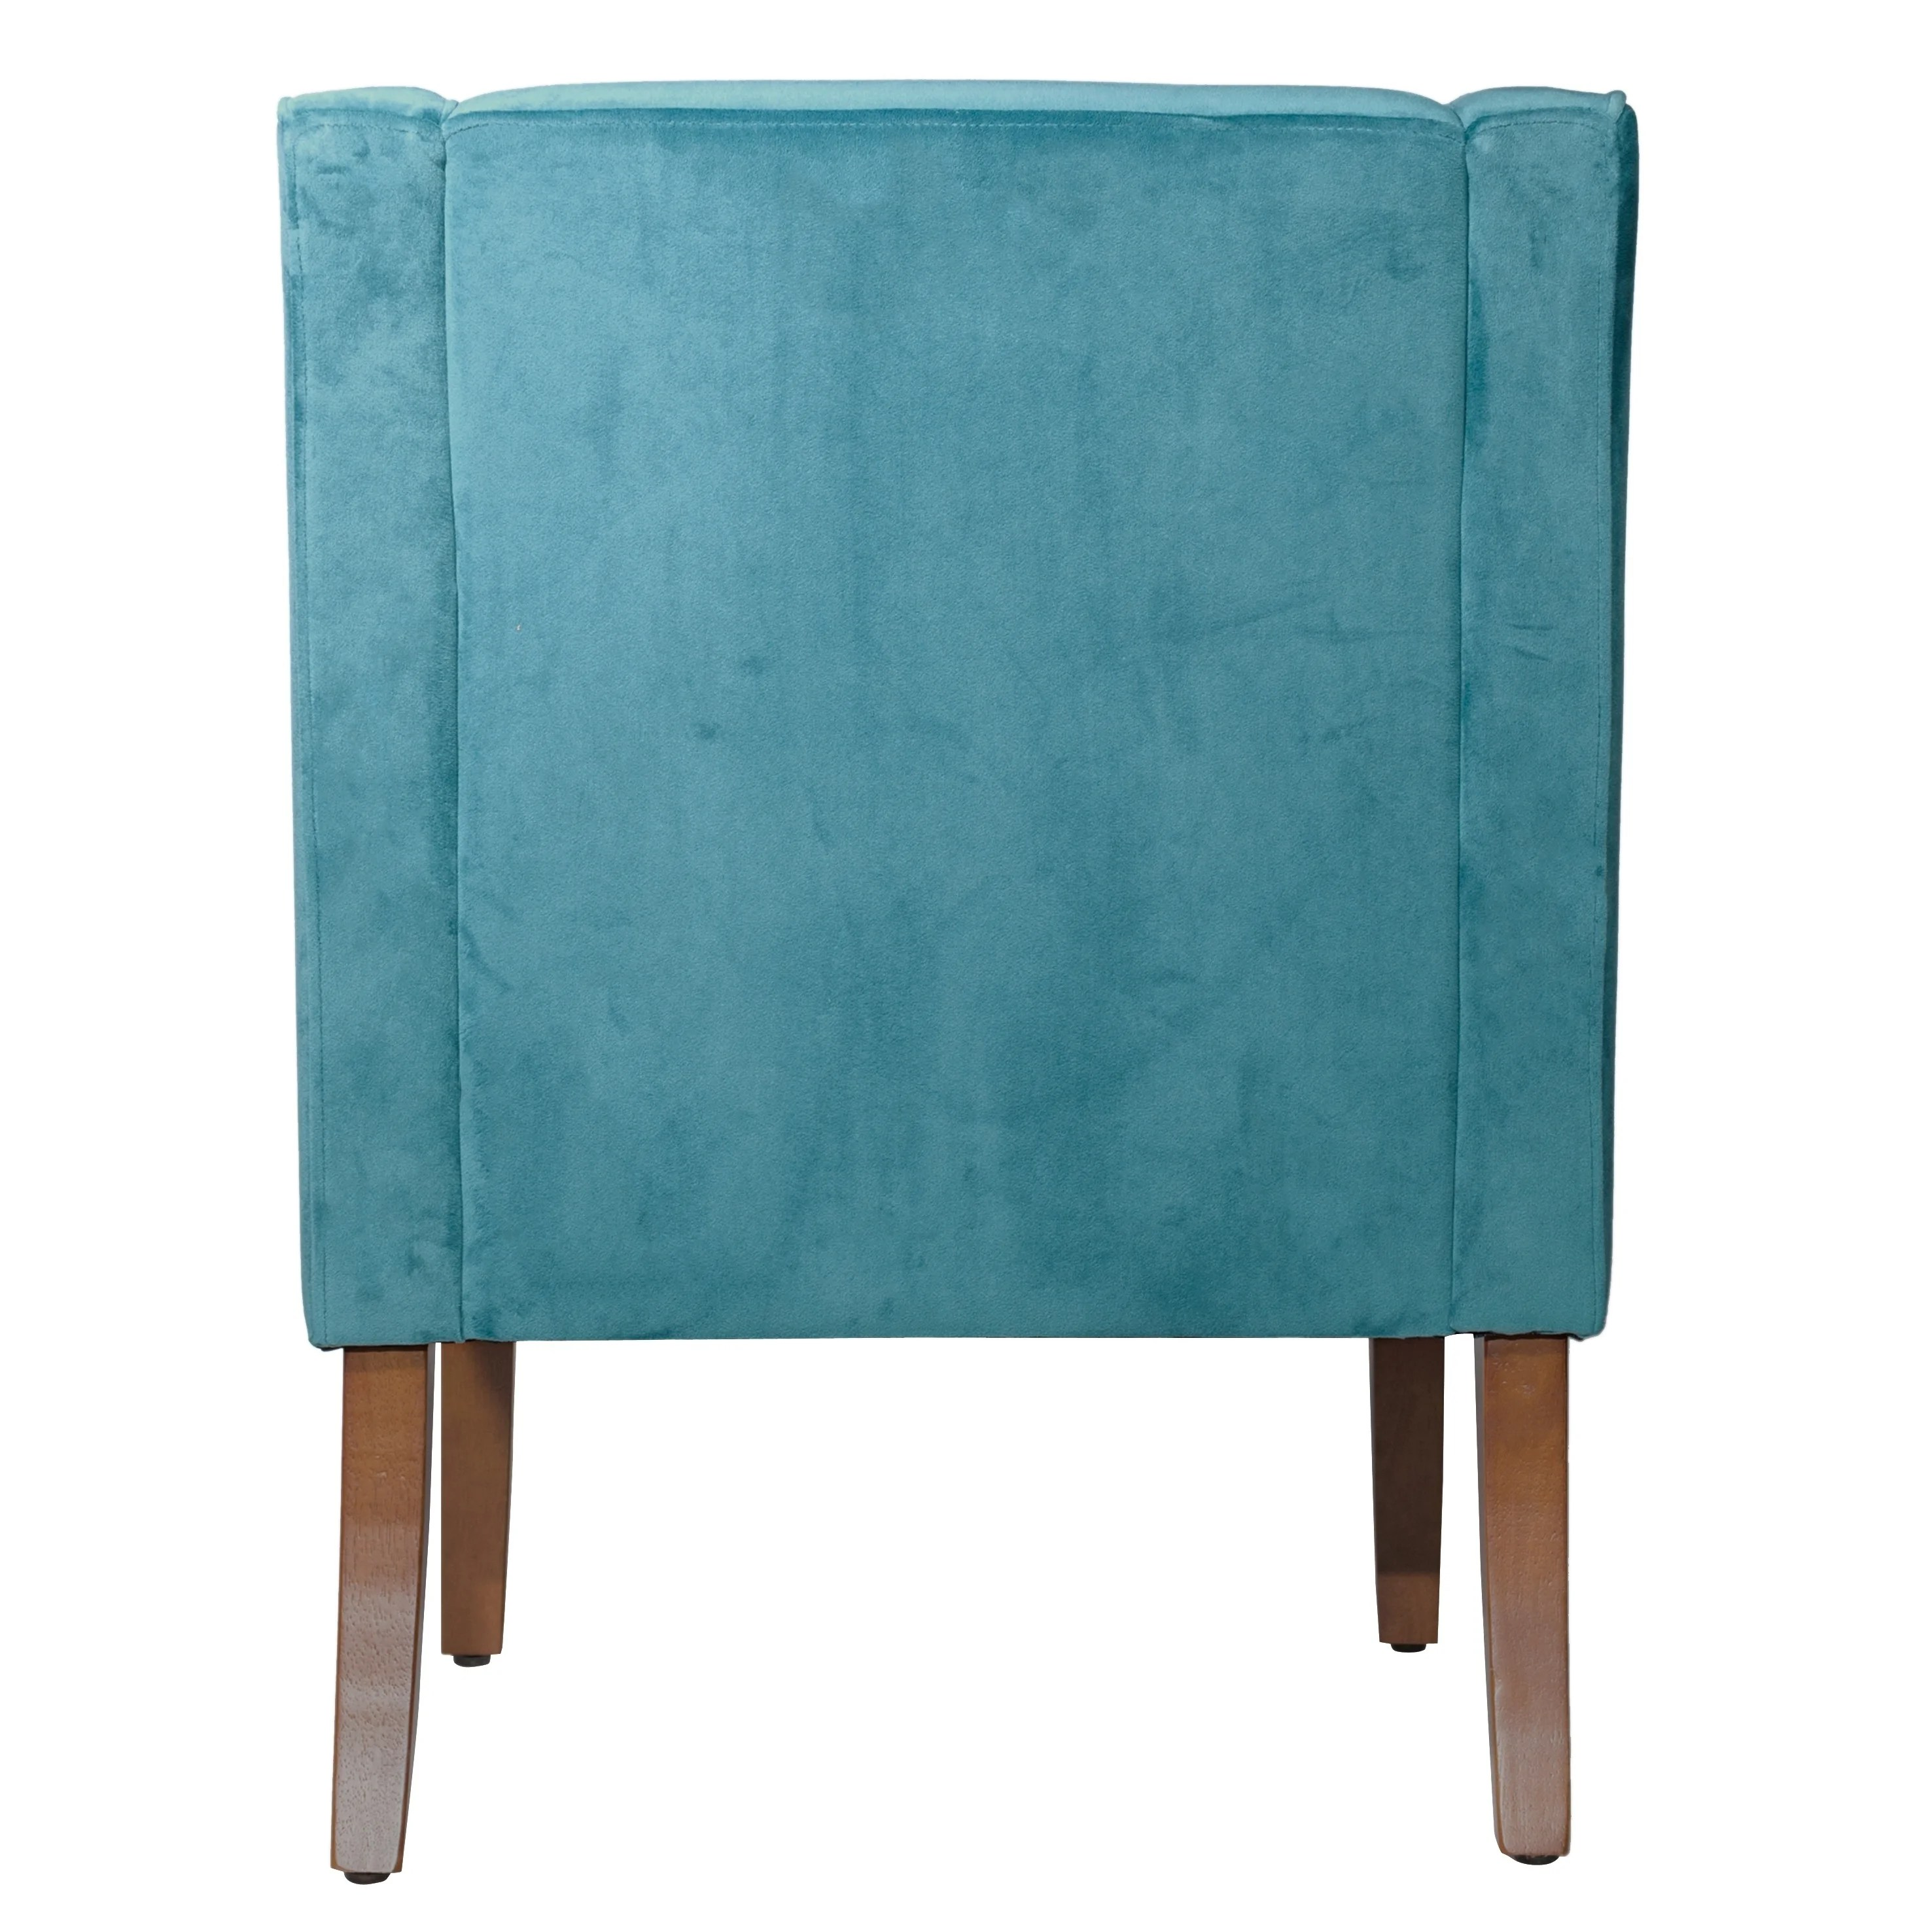 turquoise accent chairs jet 3 power chair shop homepop swoop arm in teal velvet on sale free shipping today overstock com 10508062